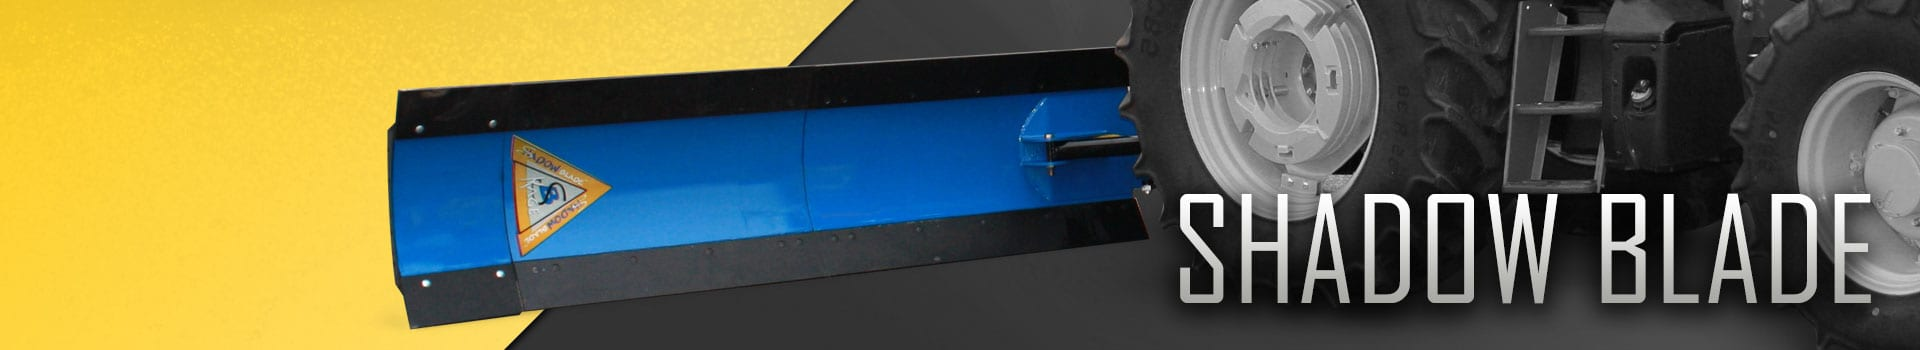 Shadow Blade Tractor Snow Plow by KAGE® Innovation